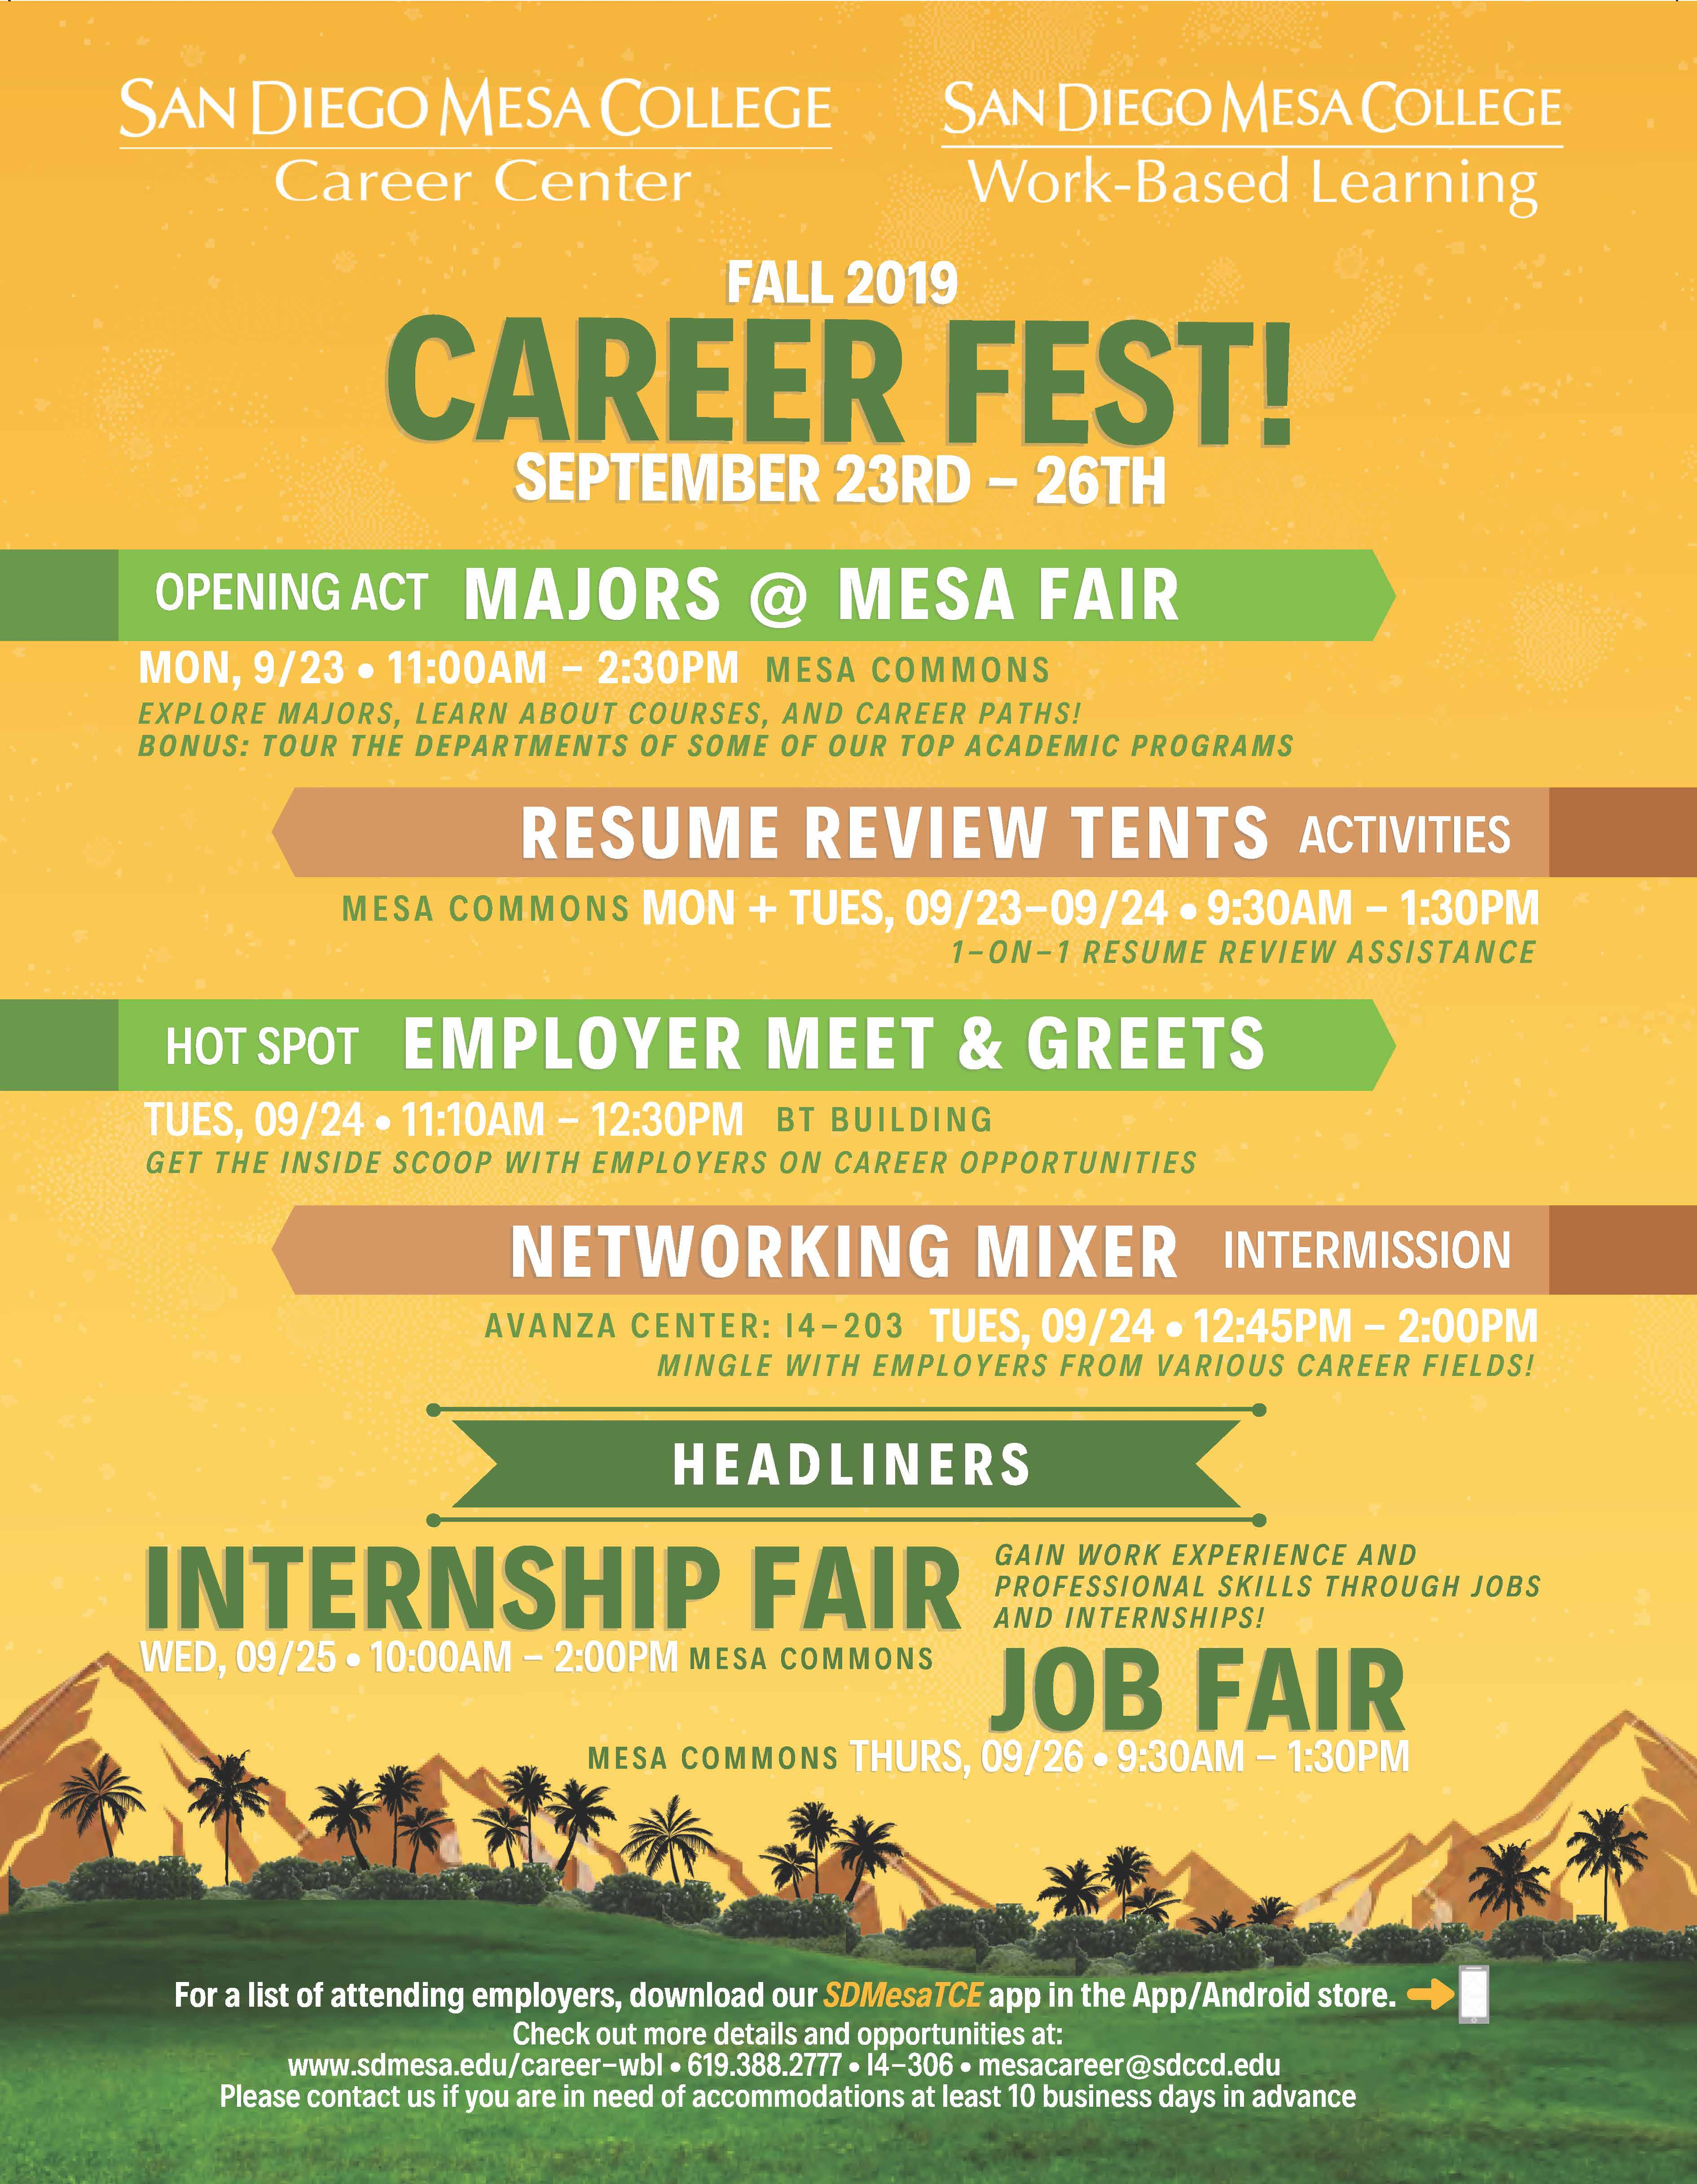 Career Fest Fall 2019 Flyer